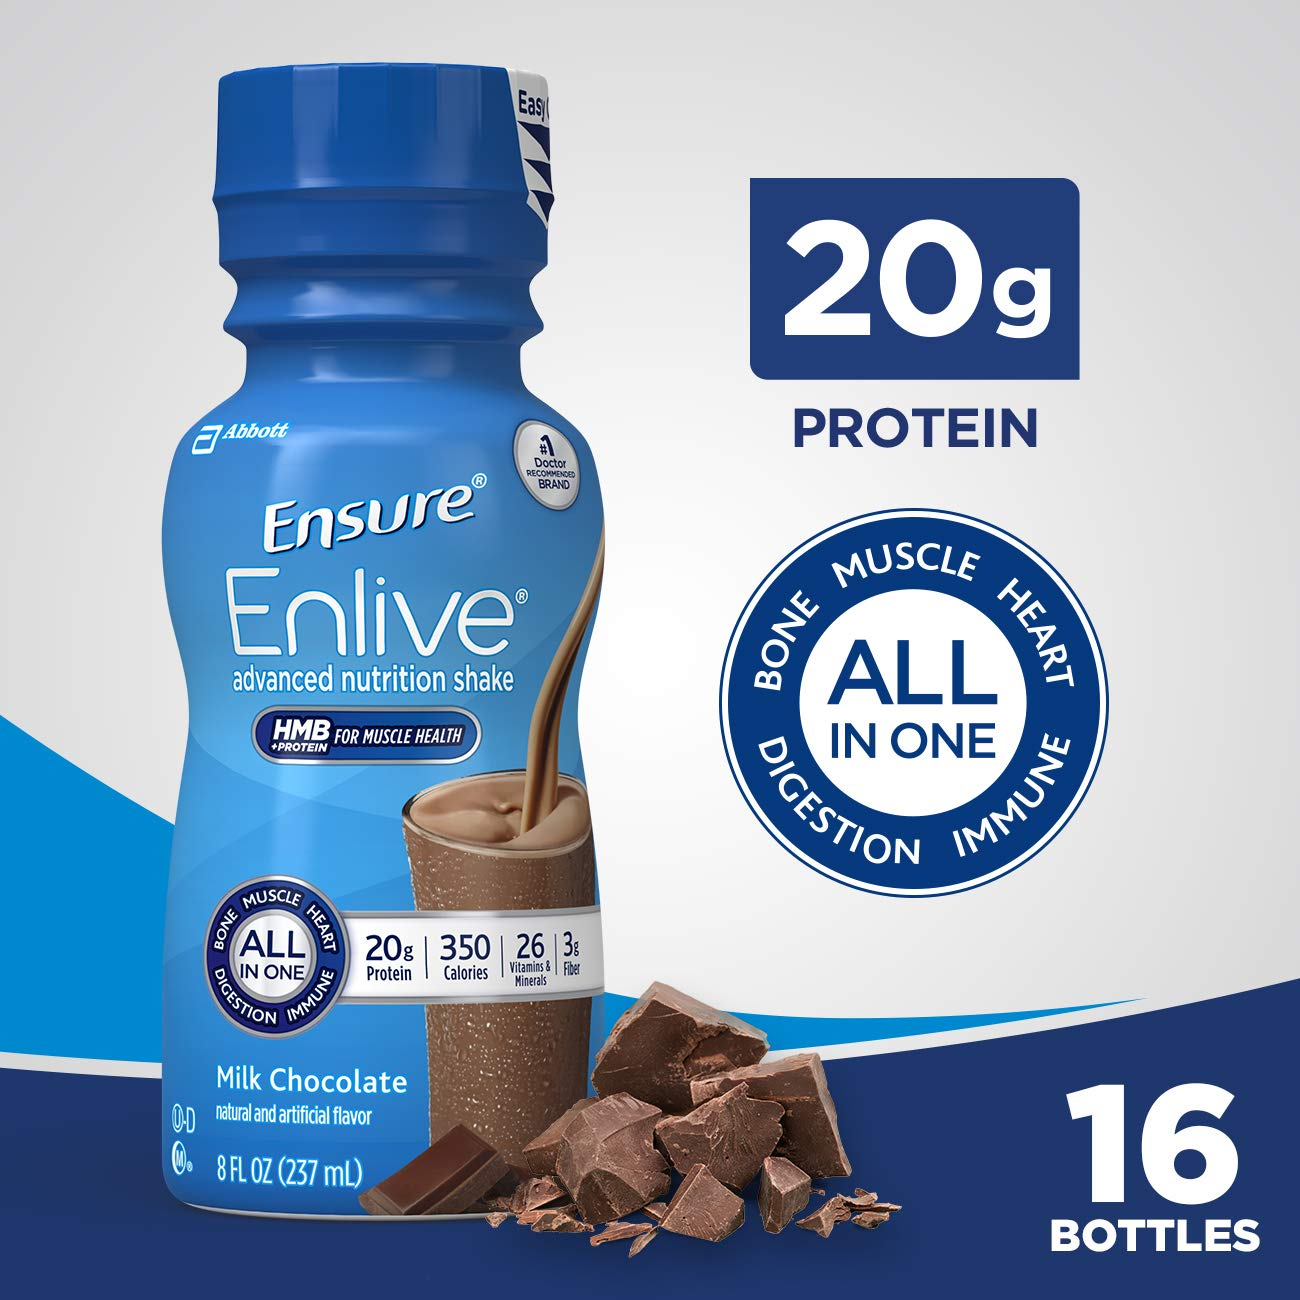 Ensure Enlive Advanced Nutrition Shake with 20 grams of protein, Milk Chocolate, 8 fl oz, 16 count by Ensure